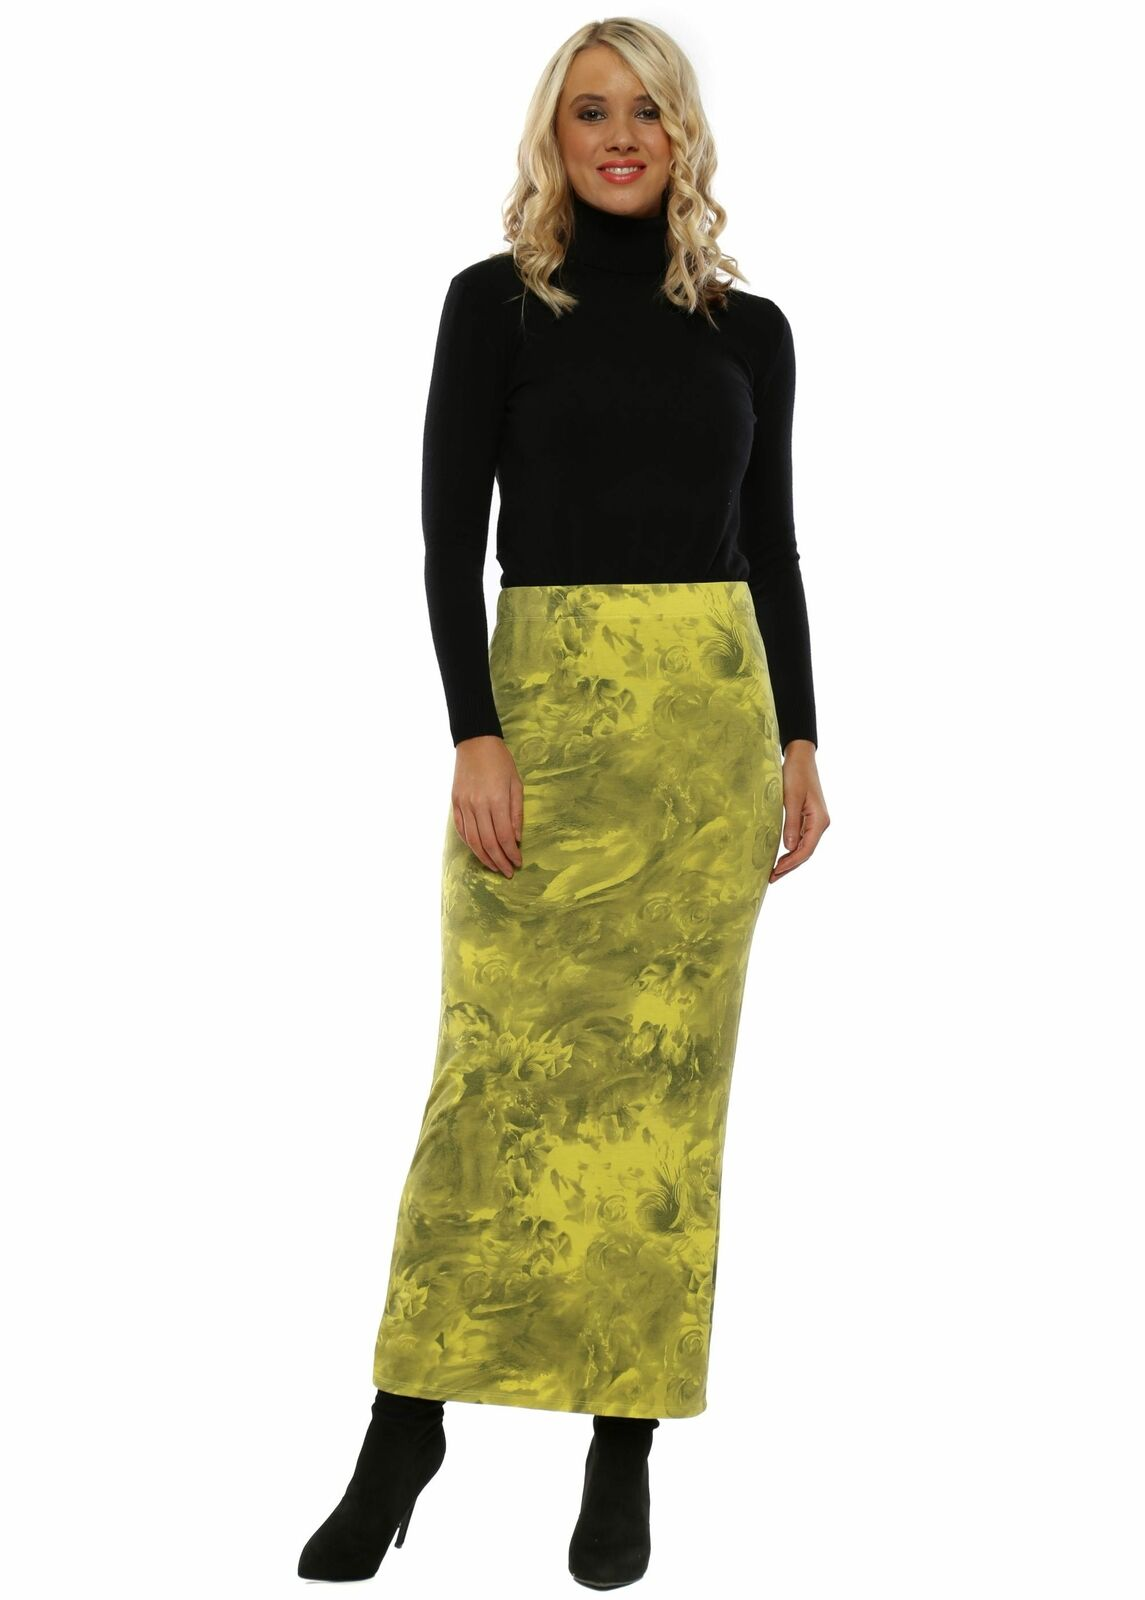 A Postcard From Brighton Faith golden Lime Frosted Flowers Jersey Skirt